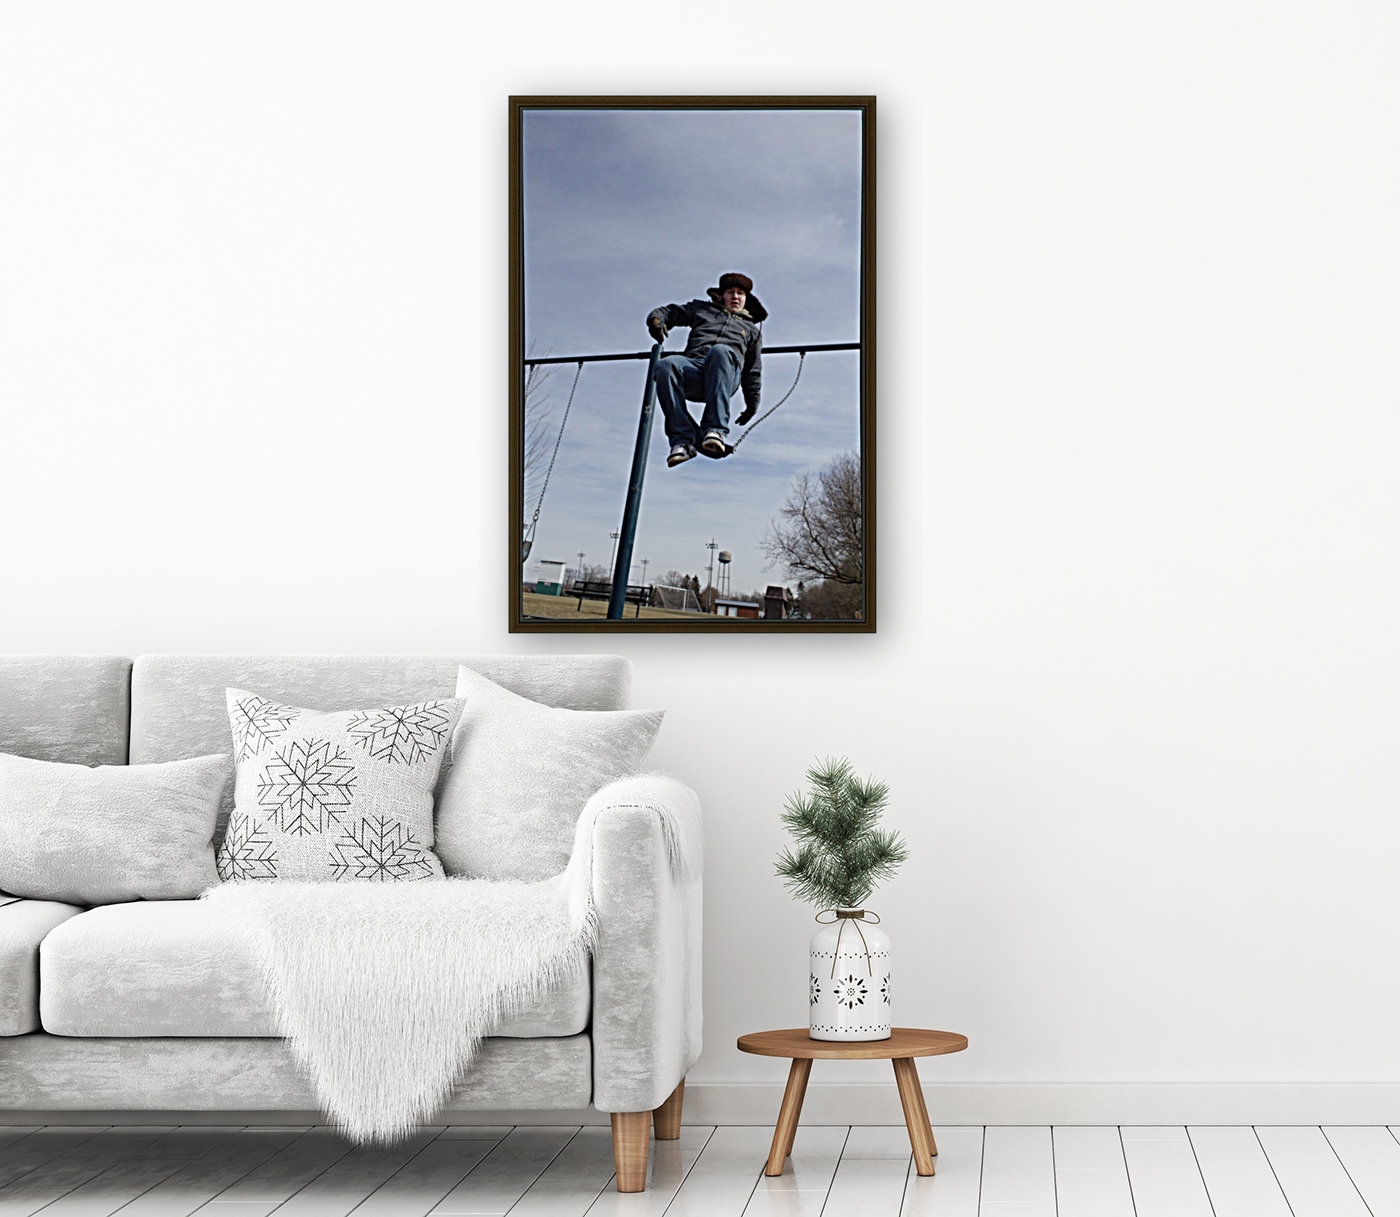 Free Fall with Floating Frame